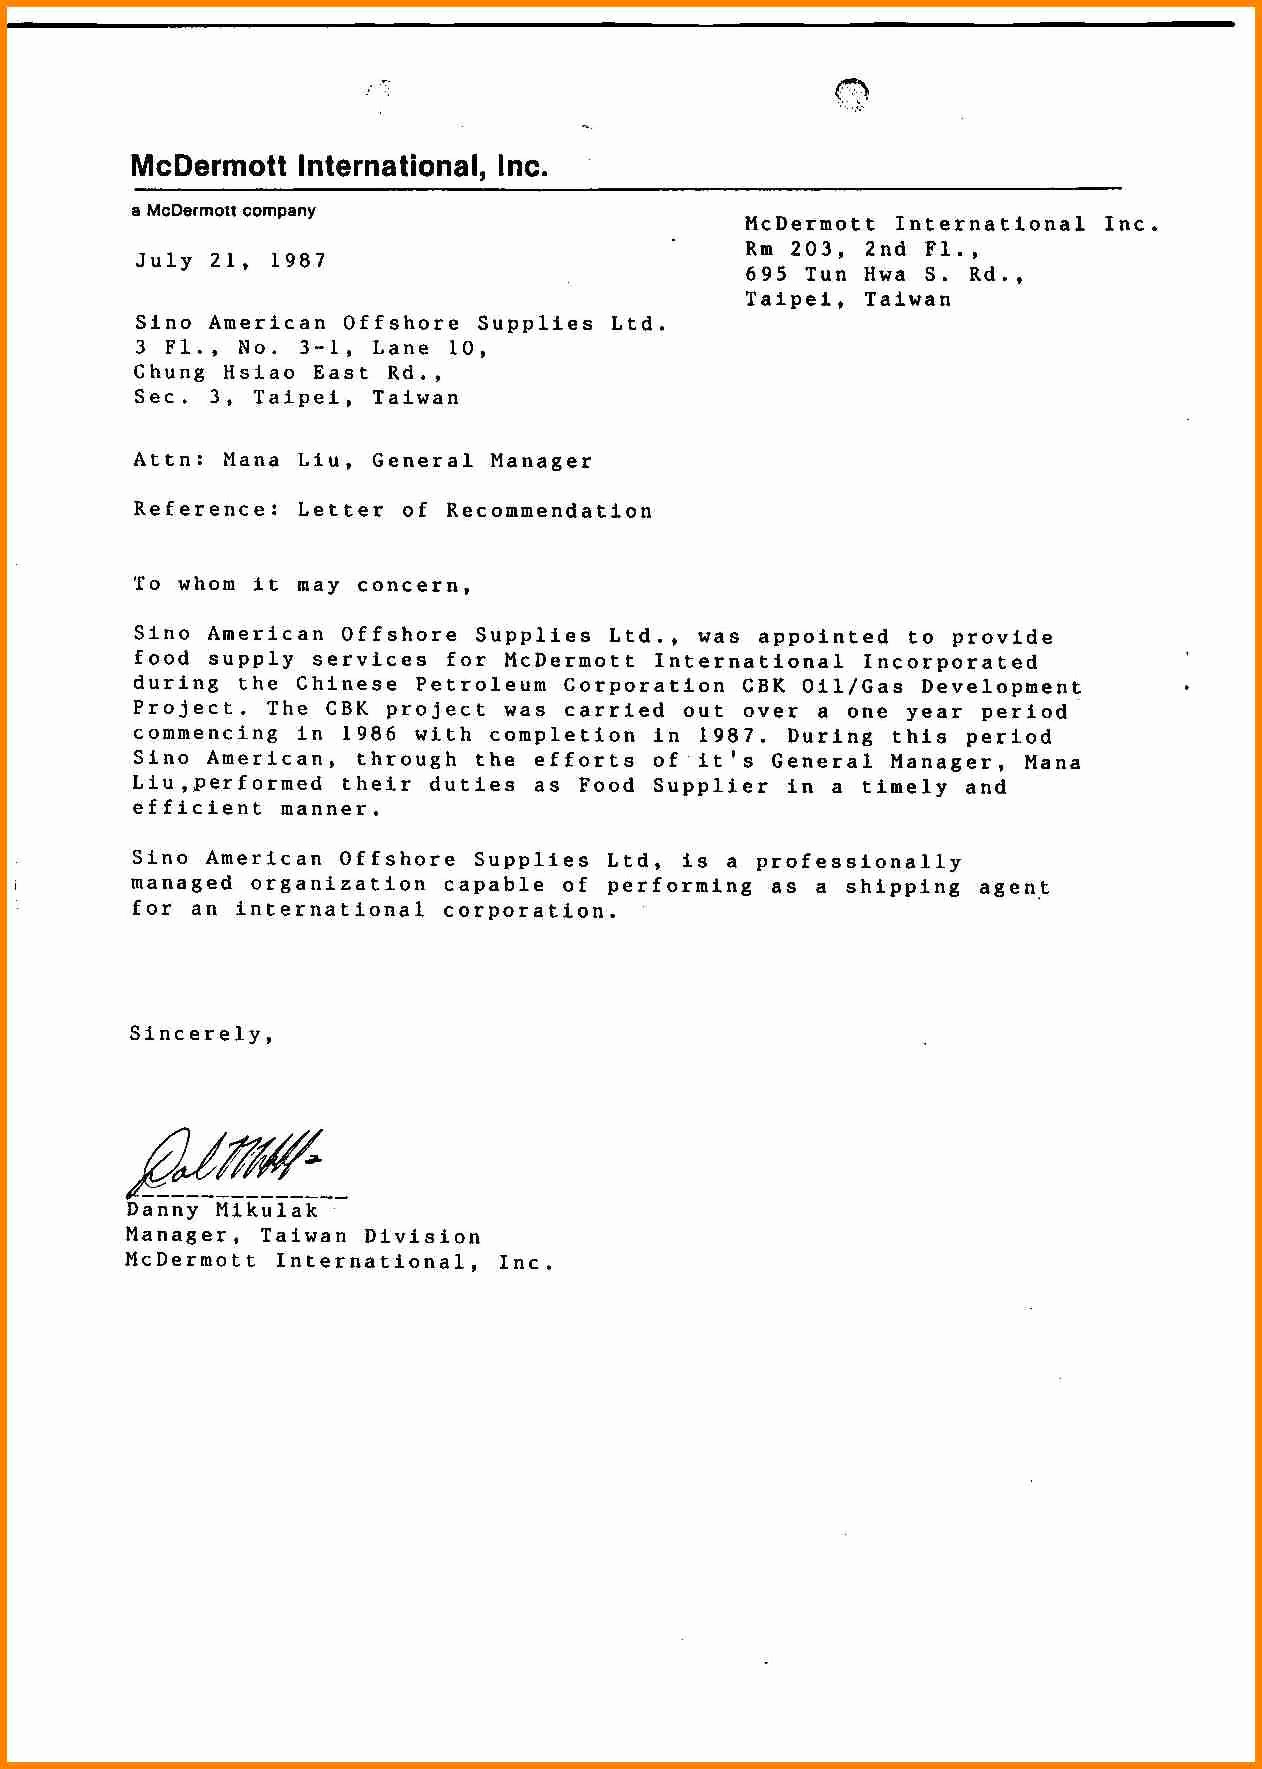 Letter Of Recommendation for athletes Fresh Sample Letter Re Mendation for A Student athlete